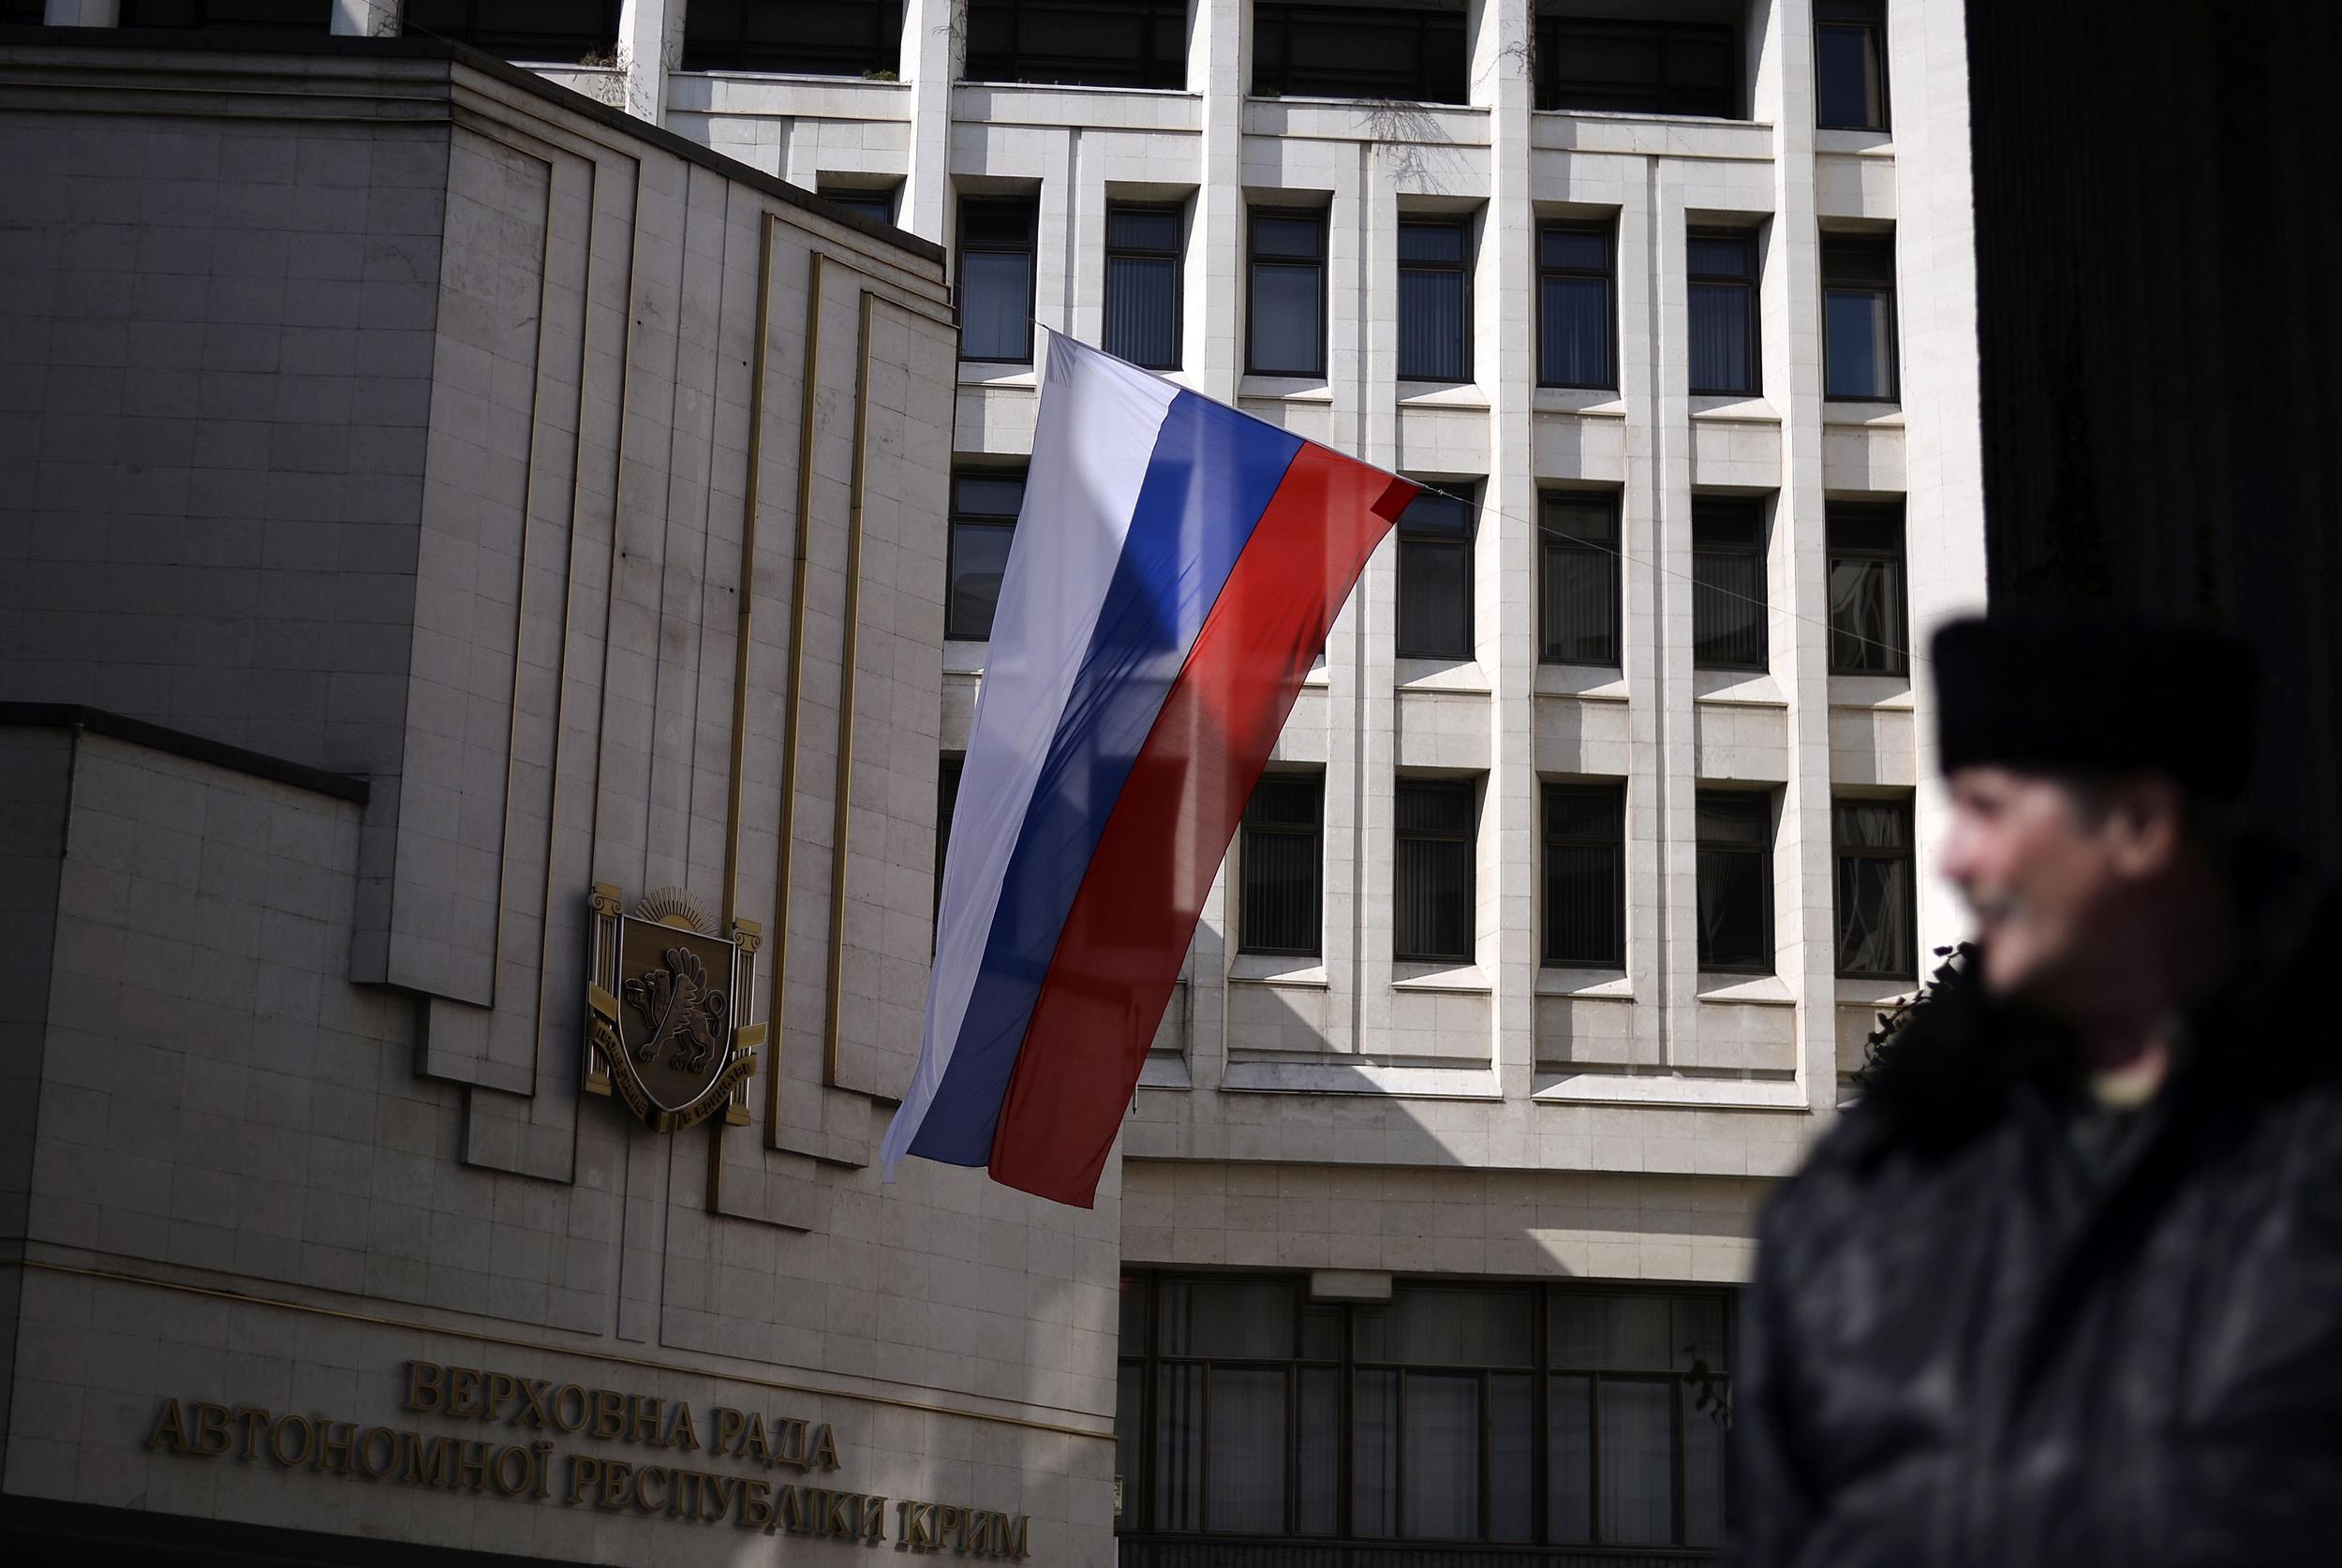 Image: A pro-Russian Cossack man stands guard in front of Crimea's regional parliament building